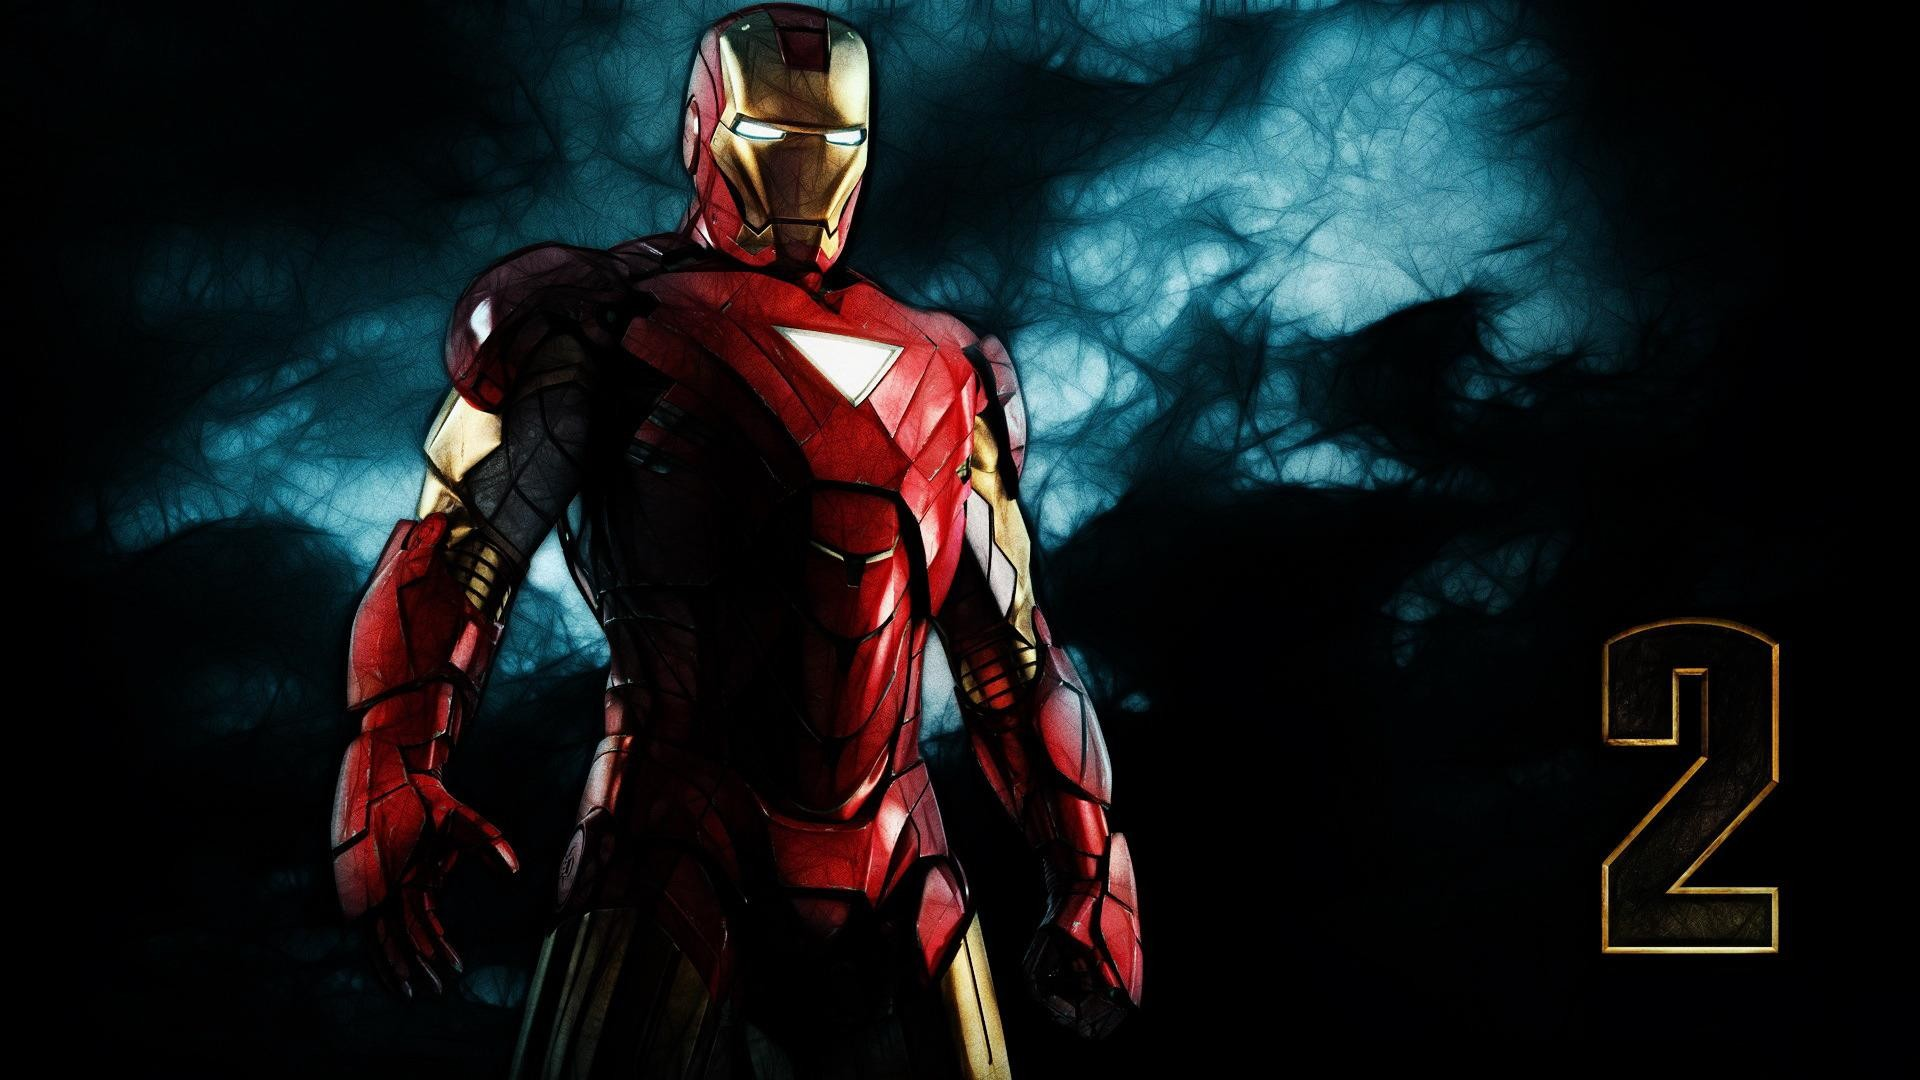 Iron Man 2 HD Desktop Wallpapers   New HD Wallpapers 1920x1080